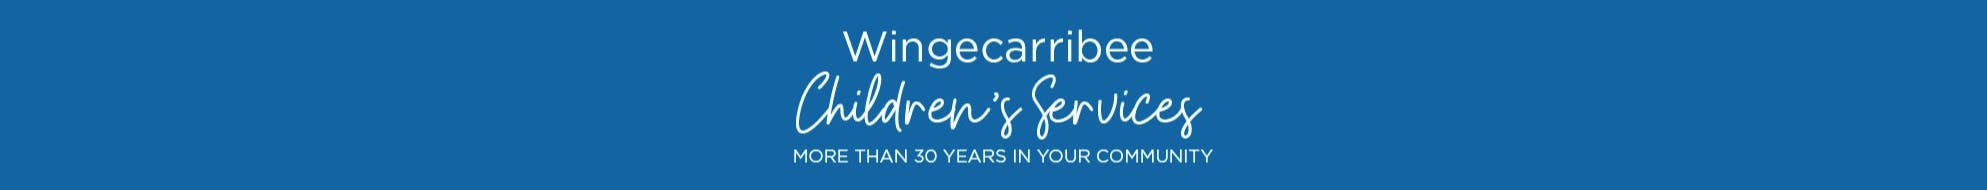 Banner for Wingecarribee Shire Council's Children's Service